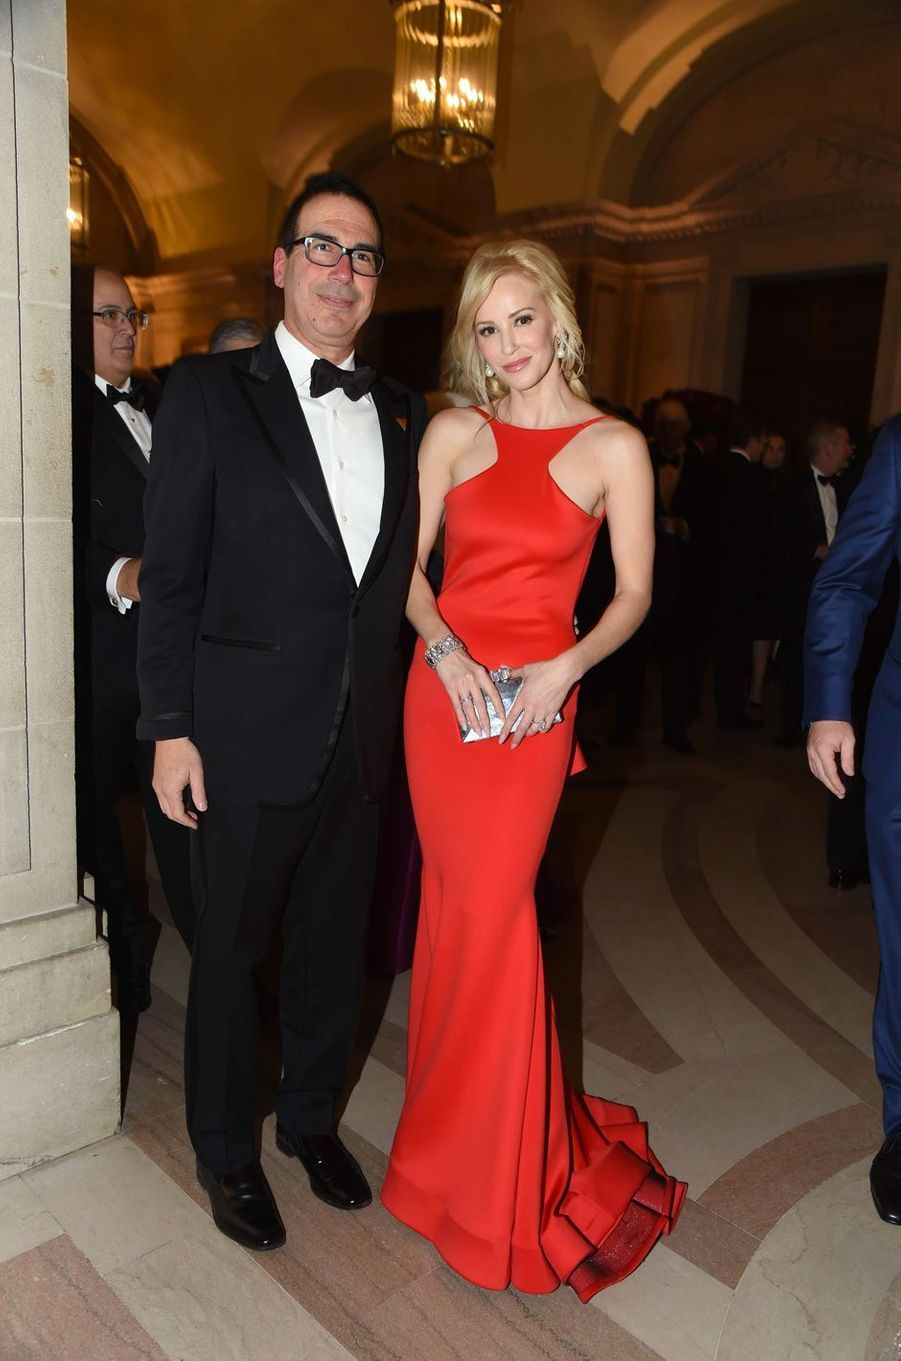 Steven Mnuchin et Louise Linton au Chairman's Global Dinner à Washington, le 17 janvier 2017.